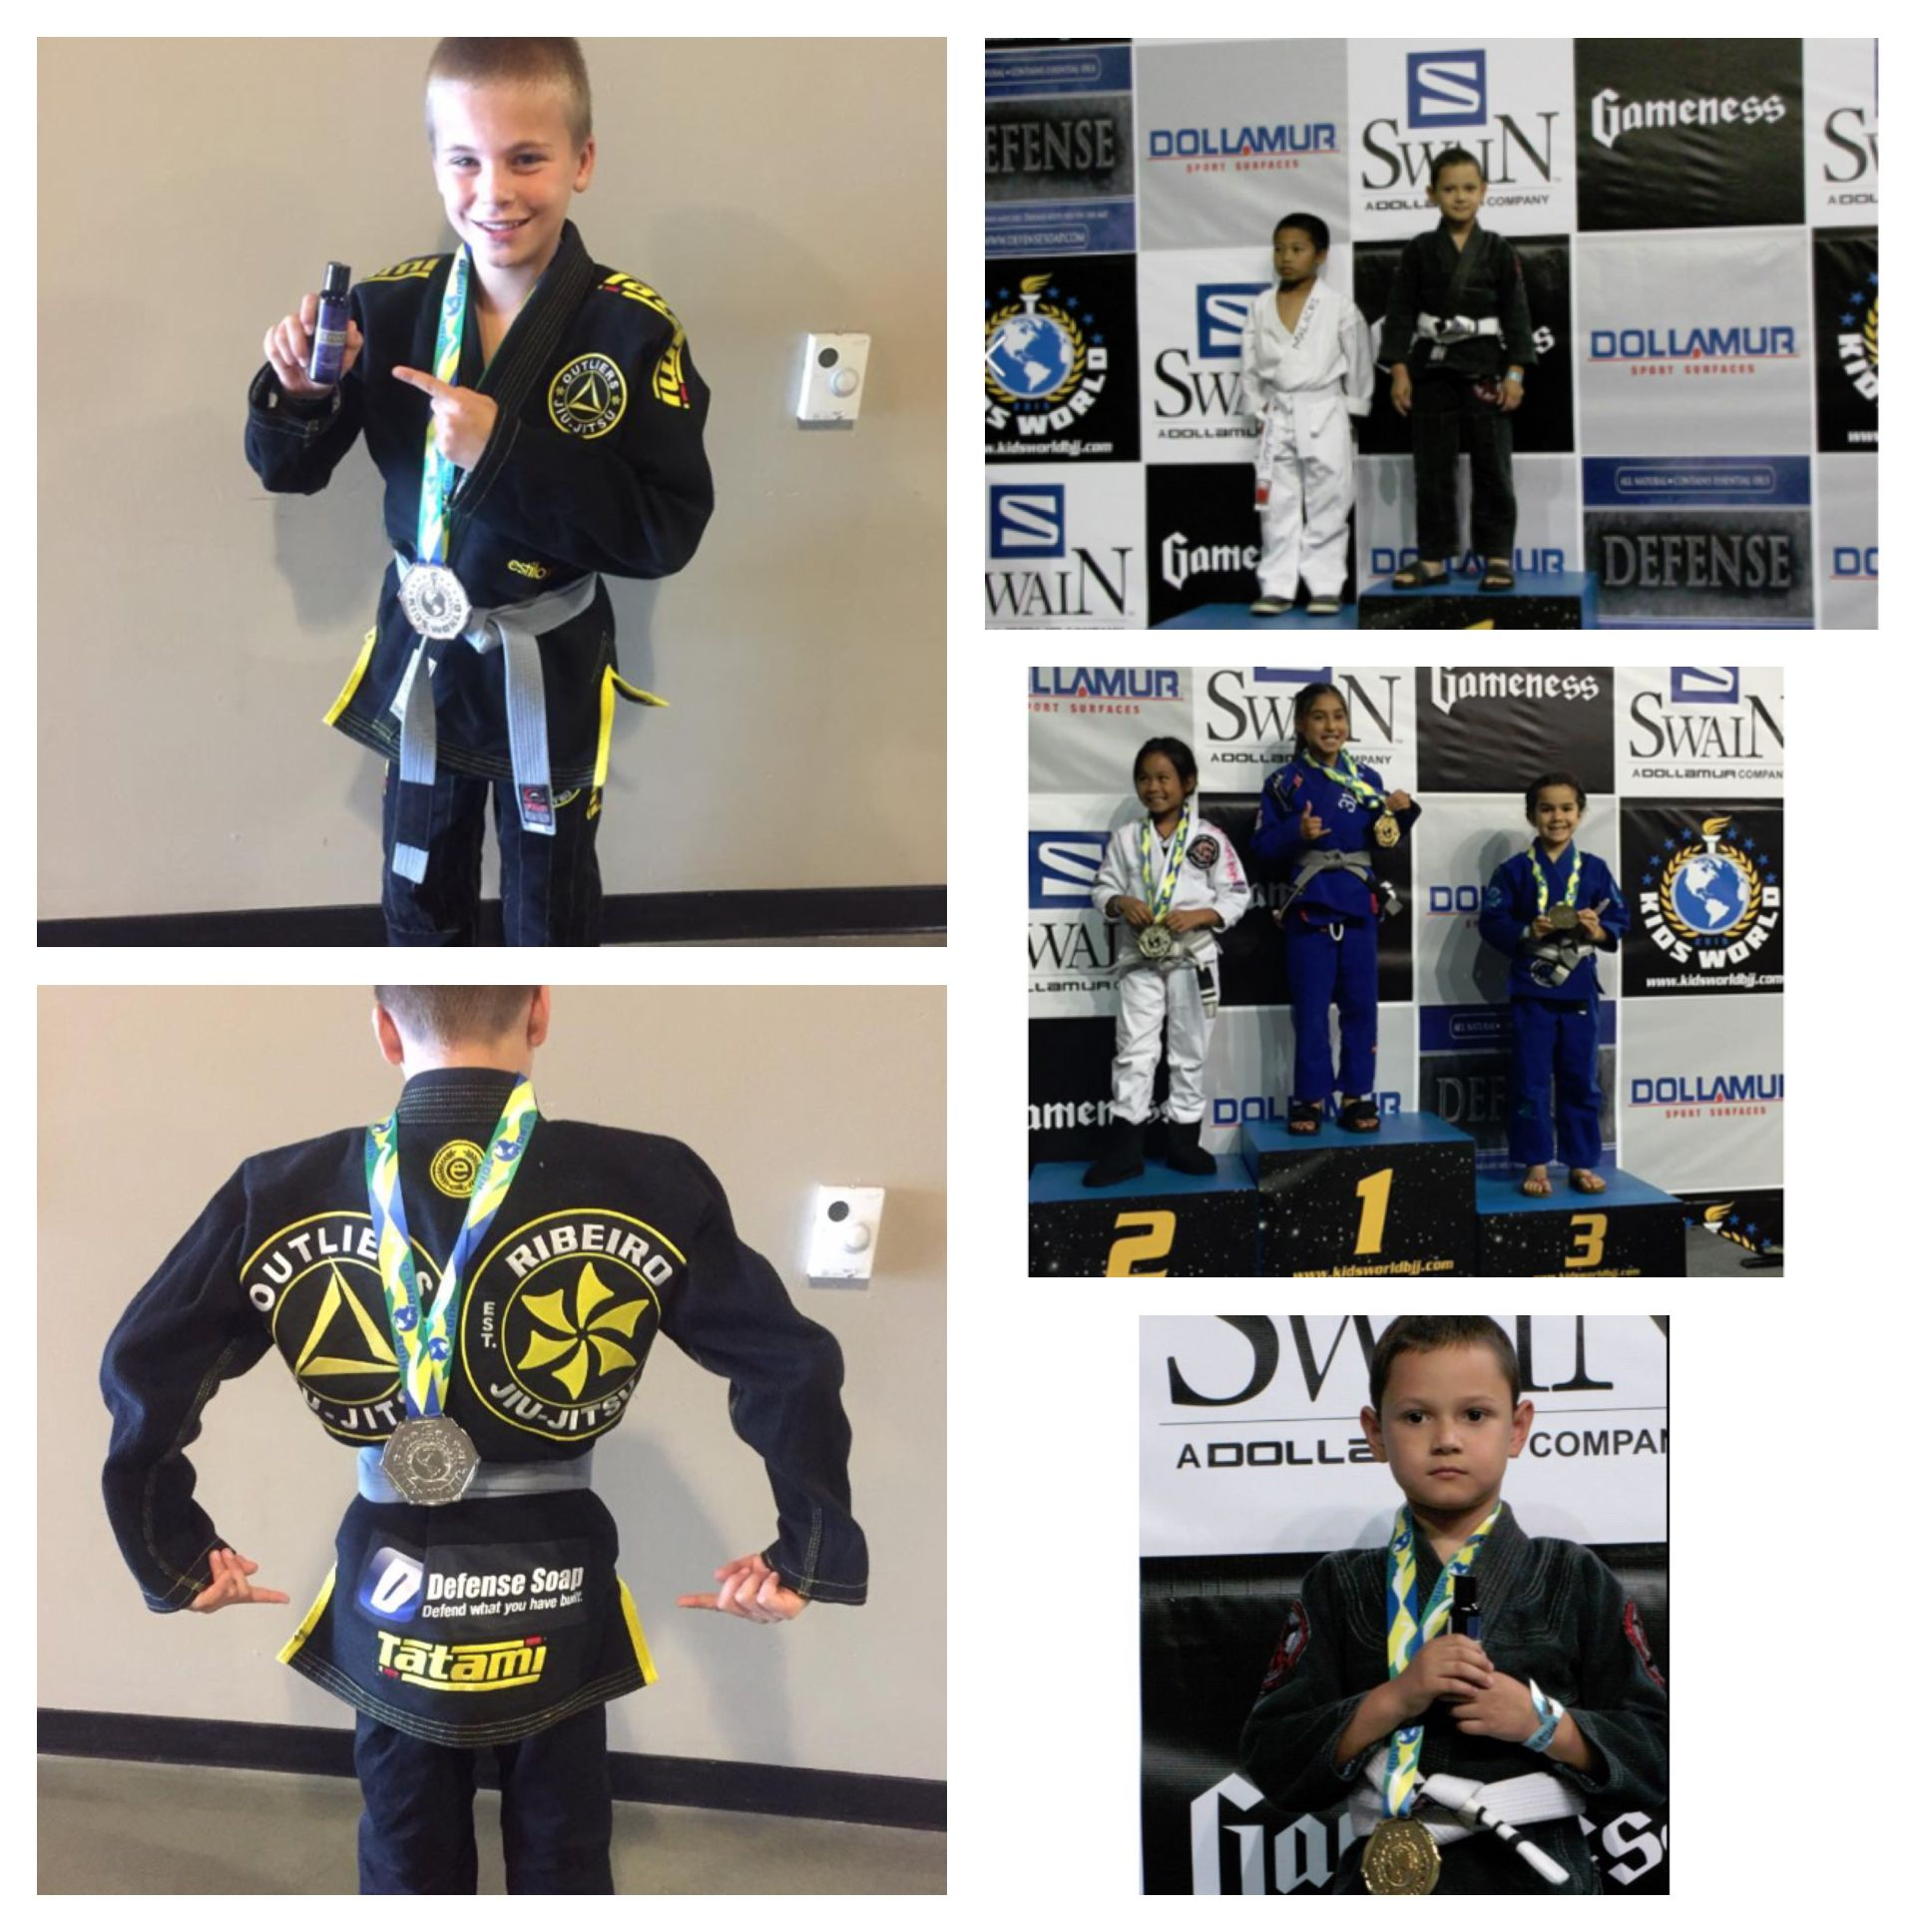 Pictures from the Kids World BJJ Tournament helped sponsored by